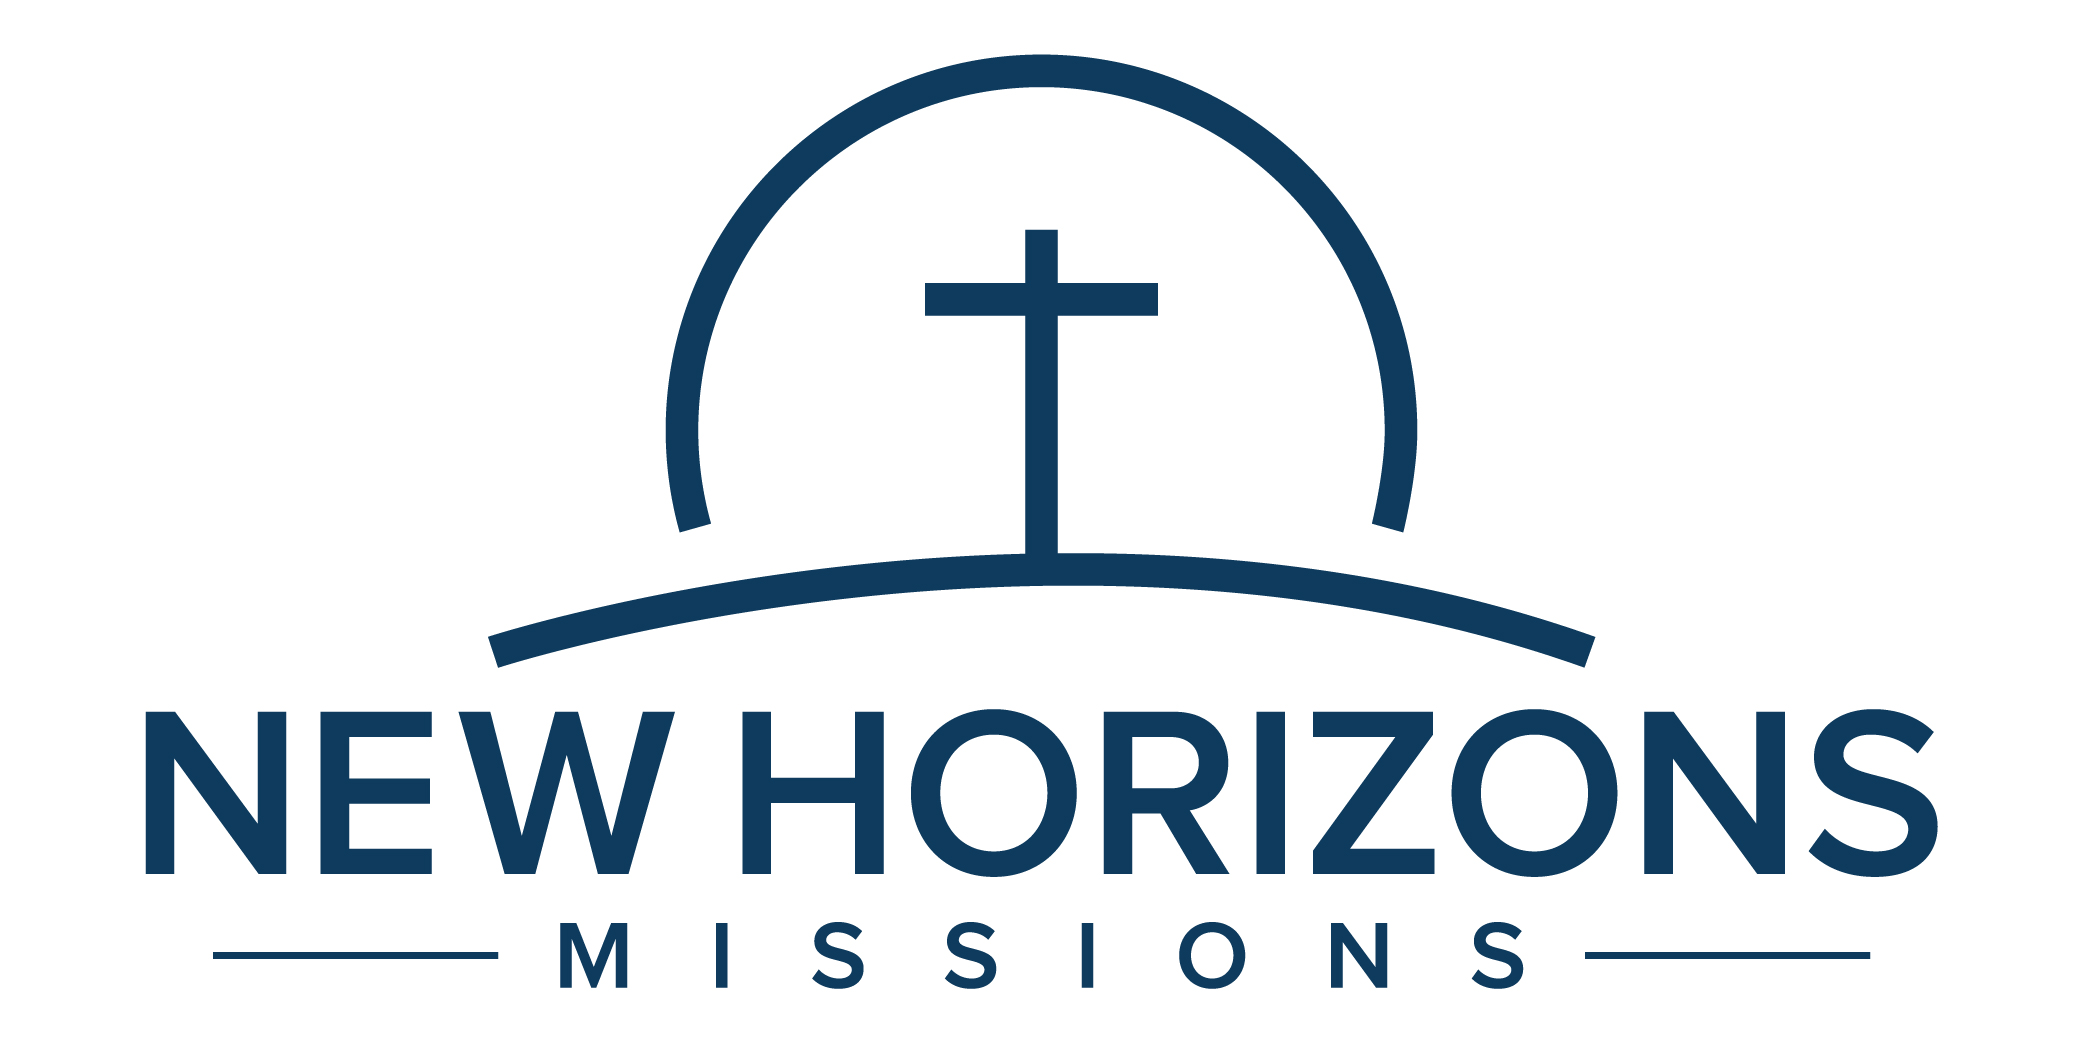 NEW HORIZONS MISSIONS